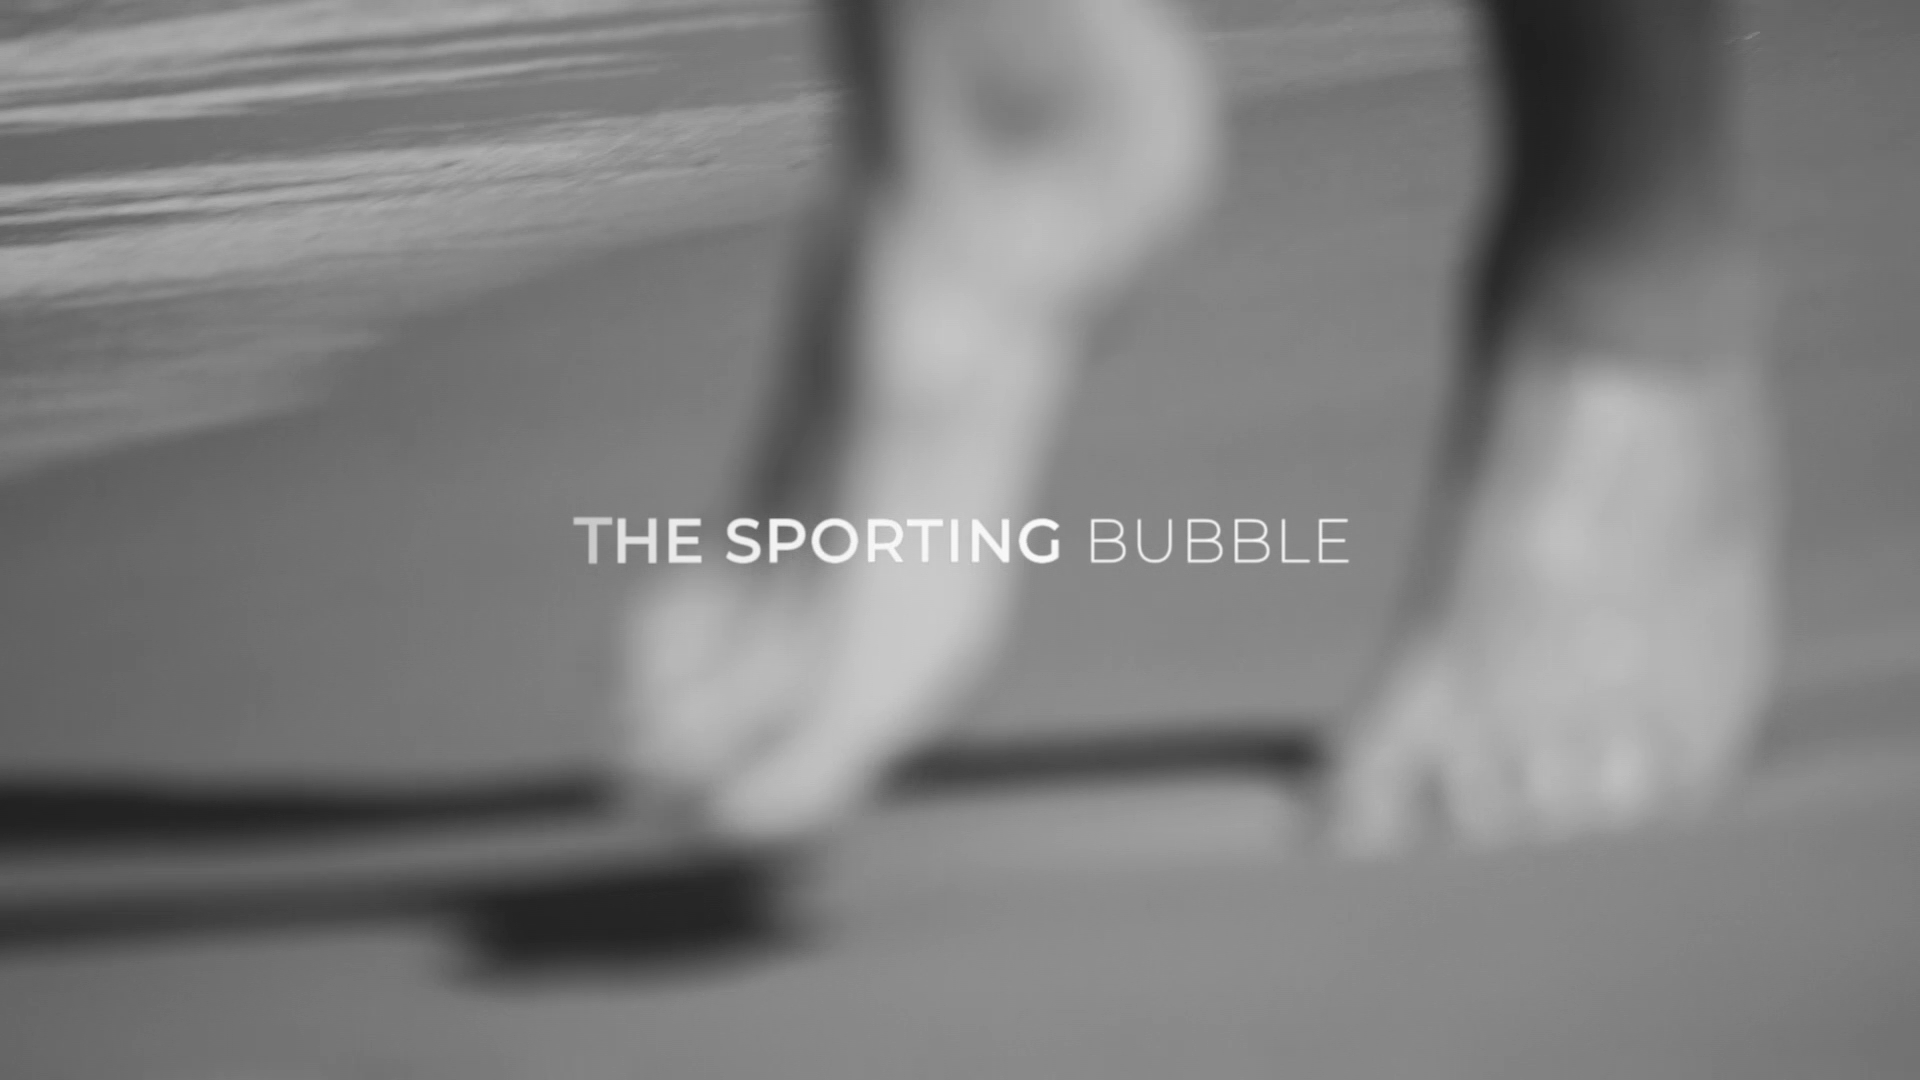 The Sporting Bubble Documentary